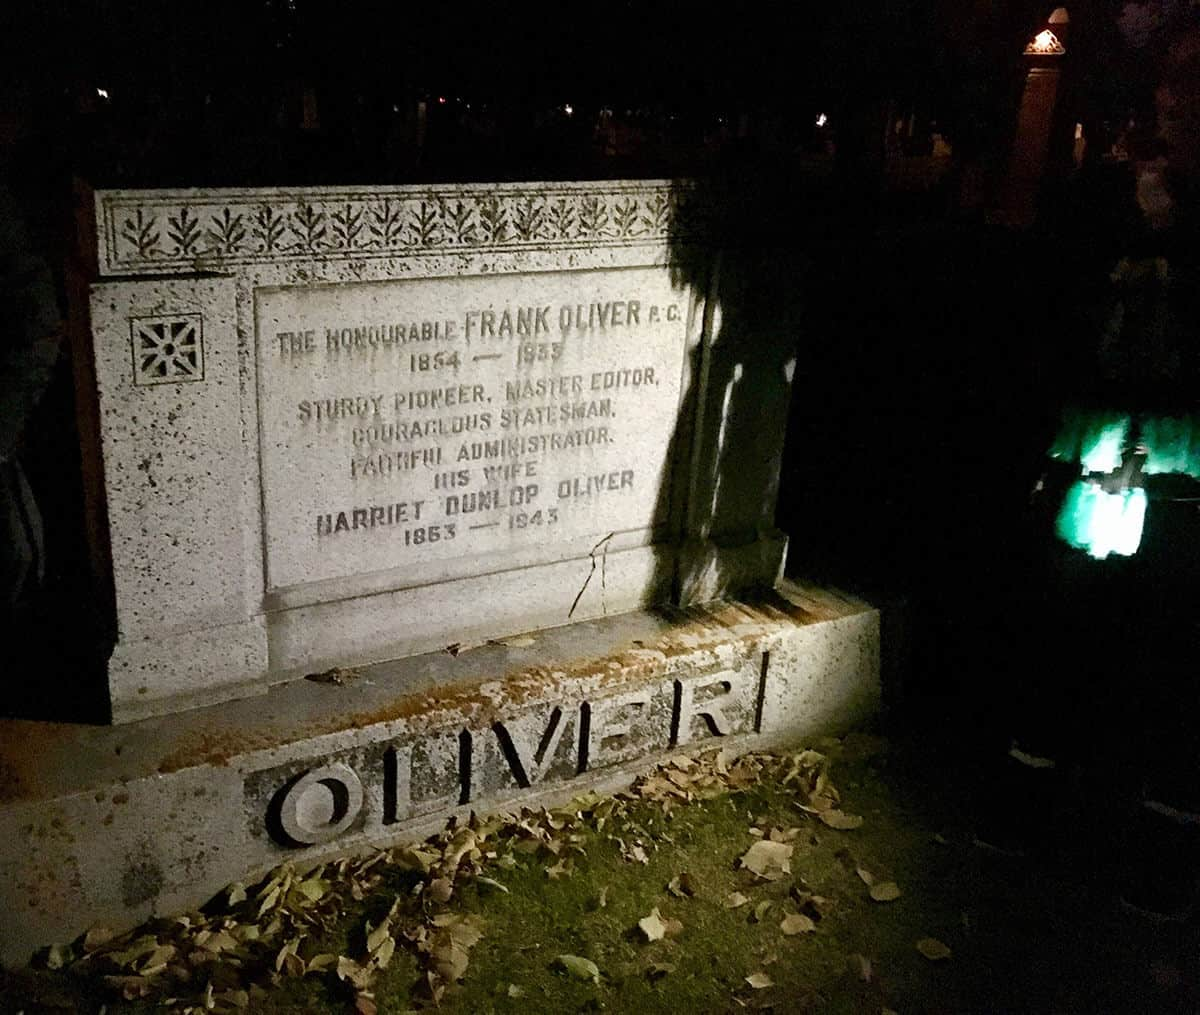 Grave stone of Frank Oliver in the Edmonton Municipal Museum at night.